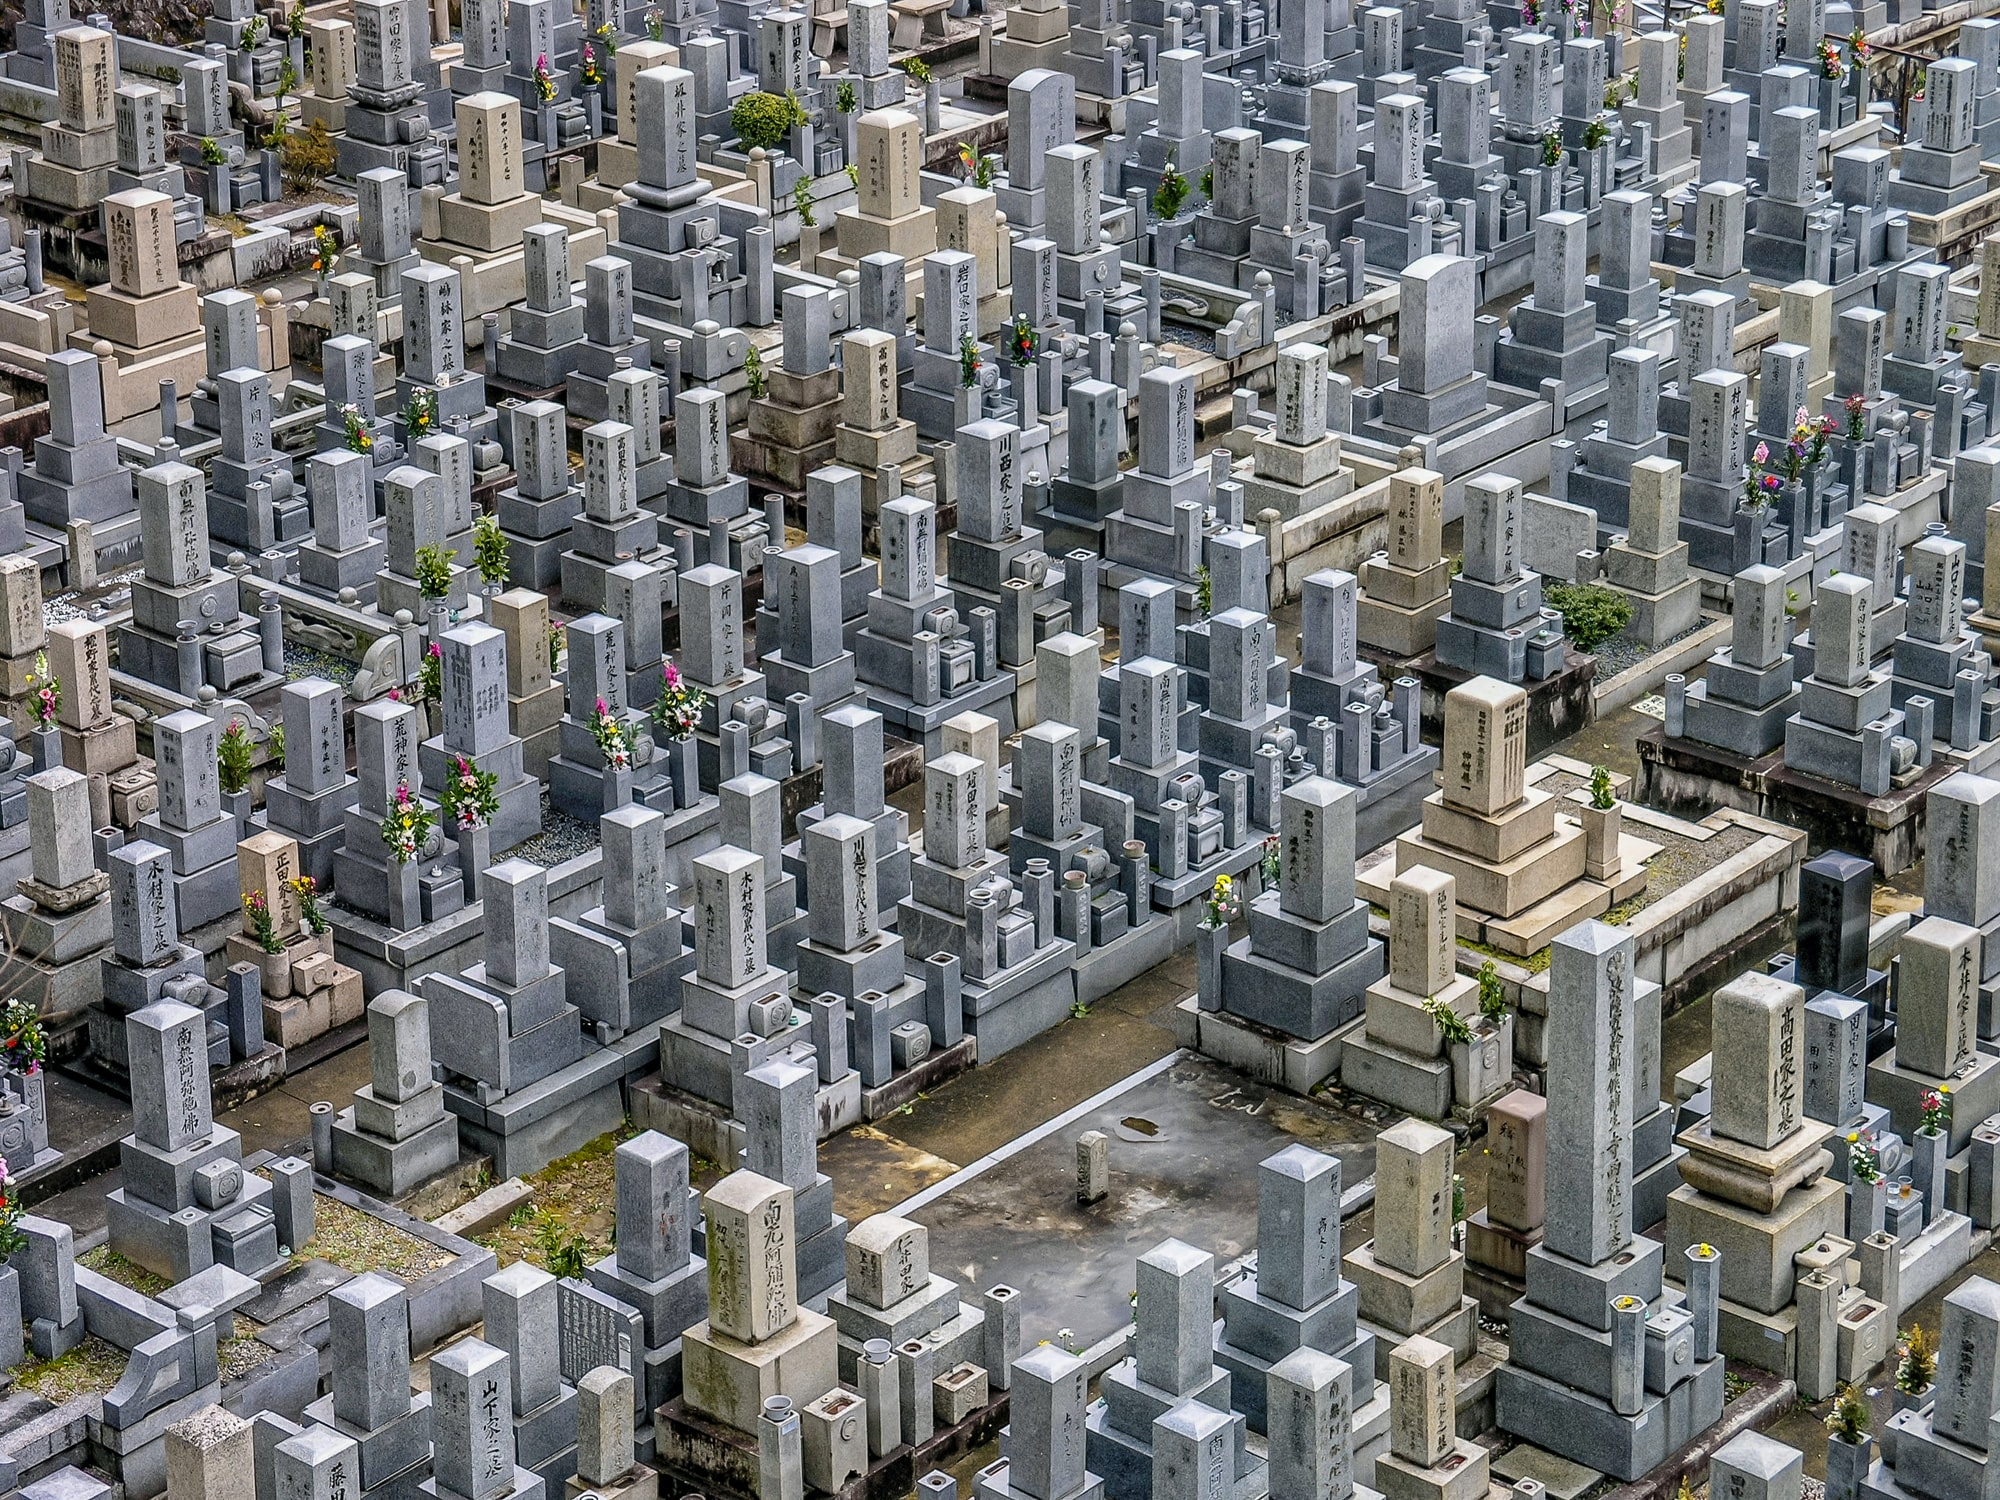 aerial photo of gray and white concrete monuments at daytime